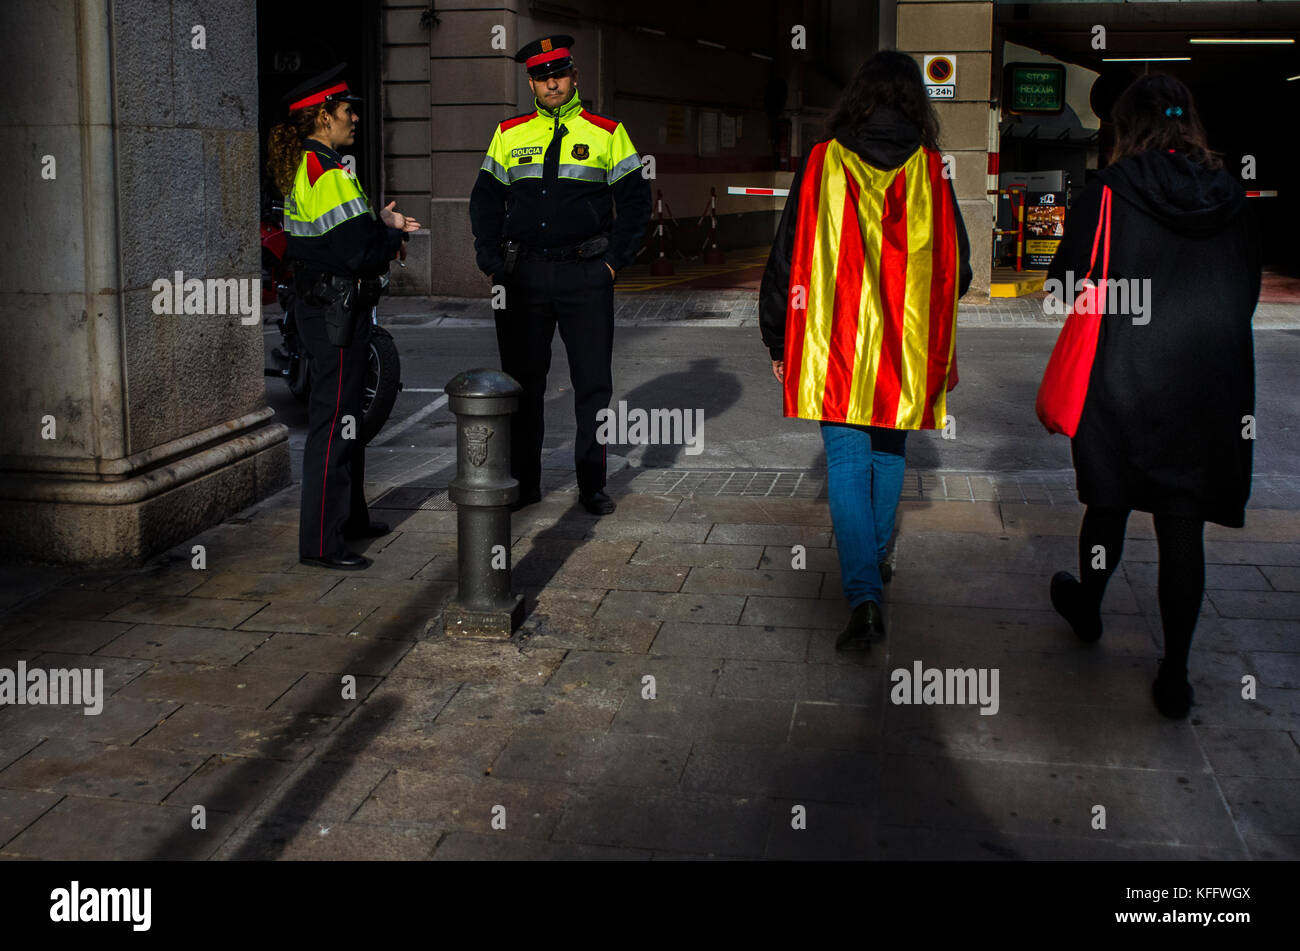 Two women walking in front of the police after voting on the 'parcicipation day' of November 9, 2014 in - Stock Image